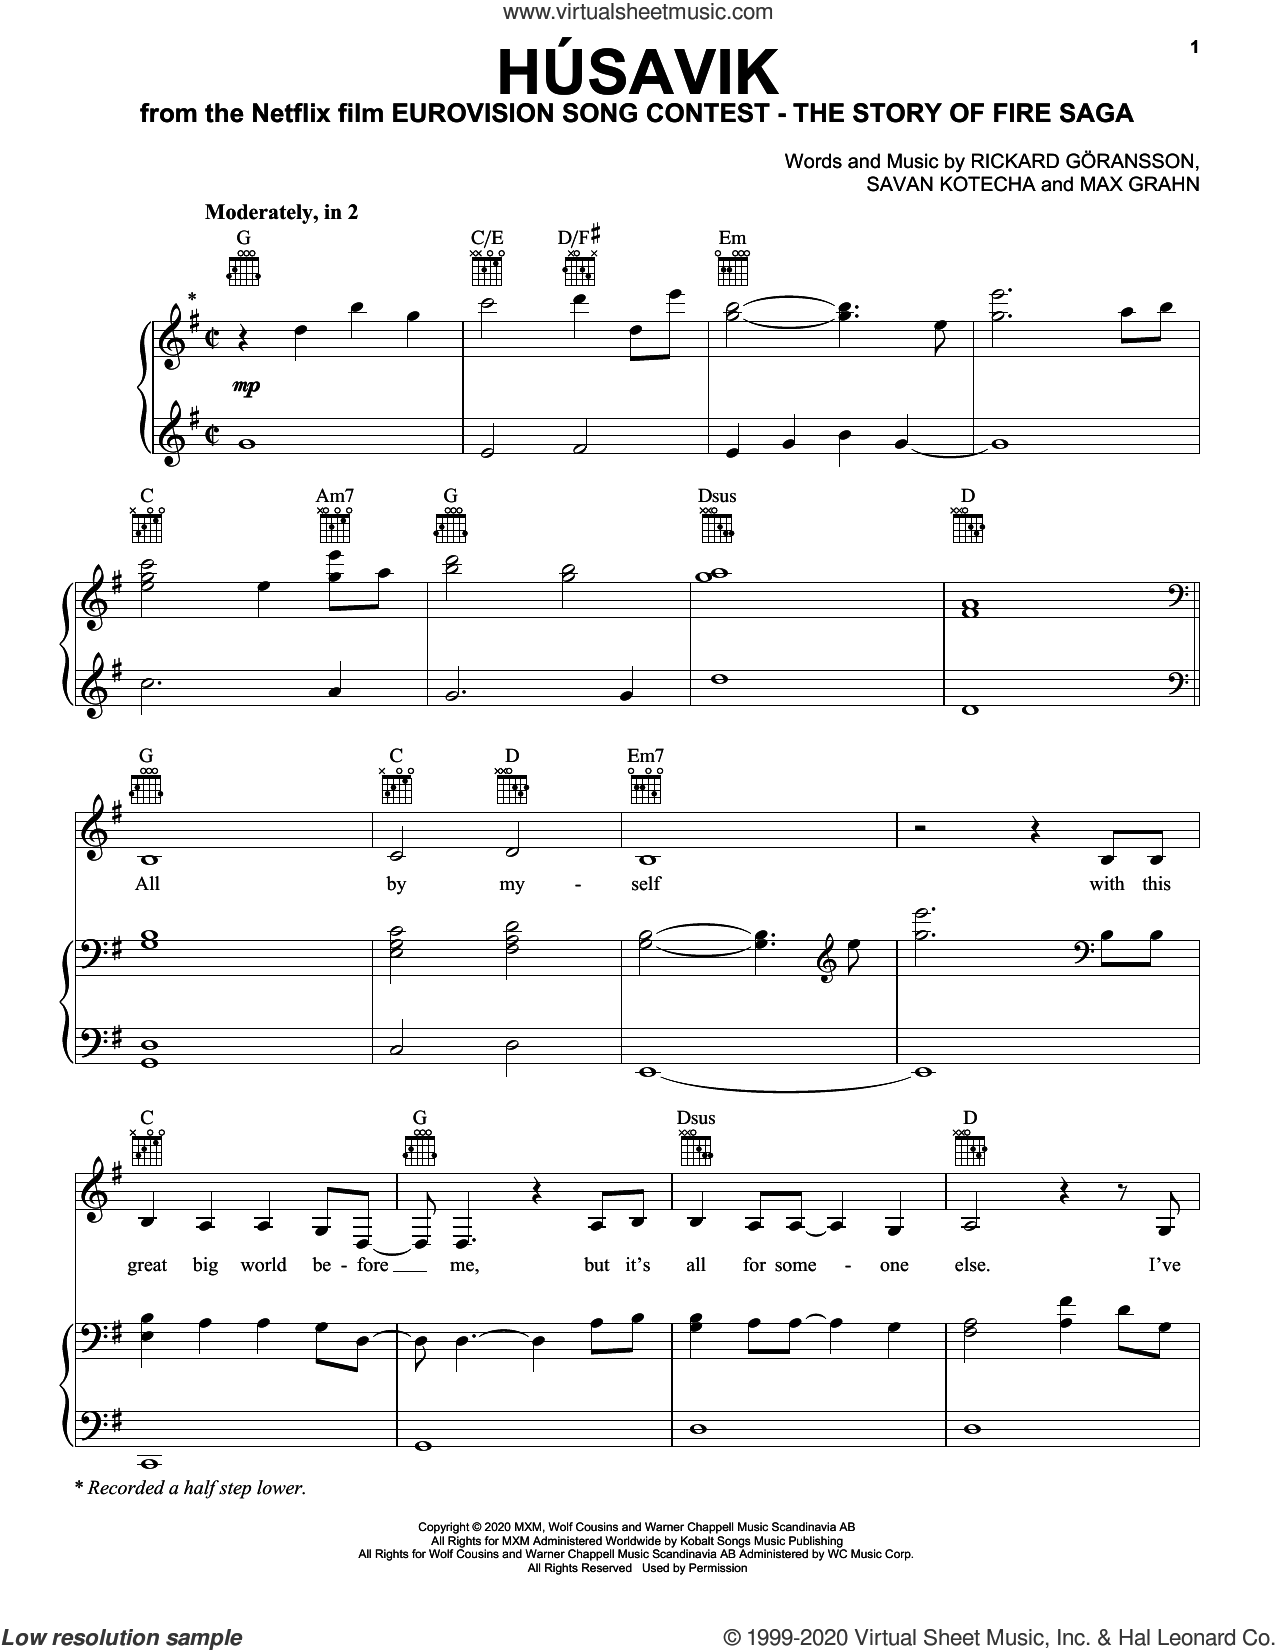 Husavik (from Eurovision Song Contest: The Story of Fire Saga) sheet music for voice, piano or guitar by Will Ferrell & My Marianne, My Marianne, Will Ferrell, Max Grahn, Rickard Goransson and Savan Kotecha, intermediate skill level